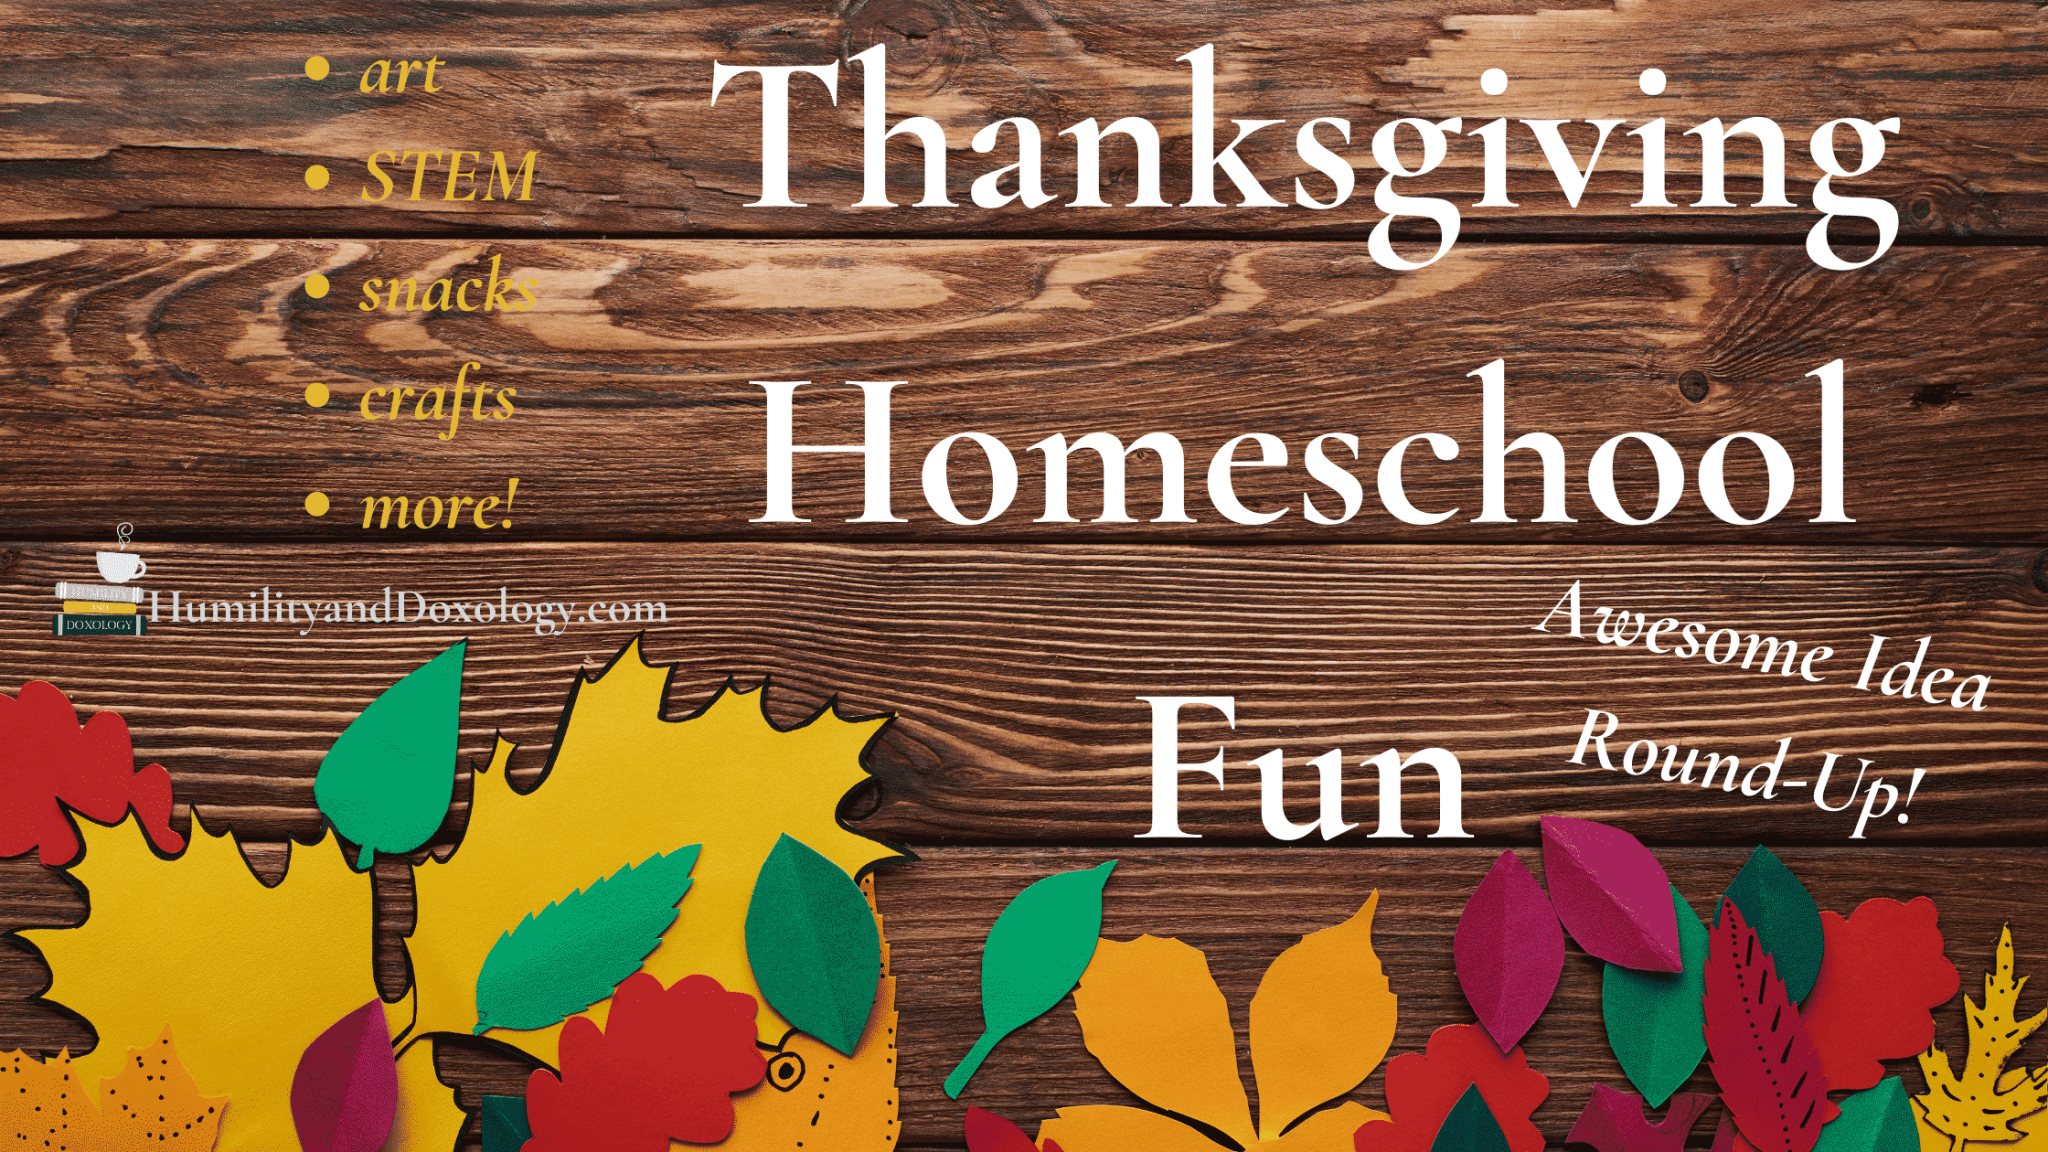 Hands On Homeschool Fun For Thanksgiving Art Science Games And More Humility And Doxology